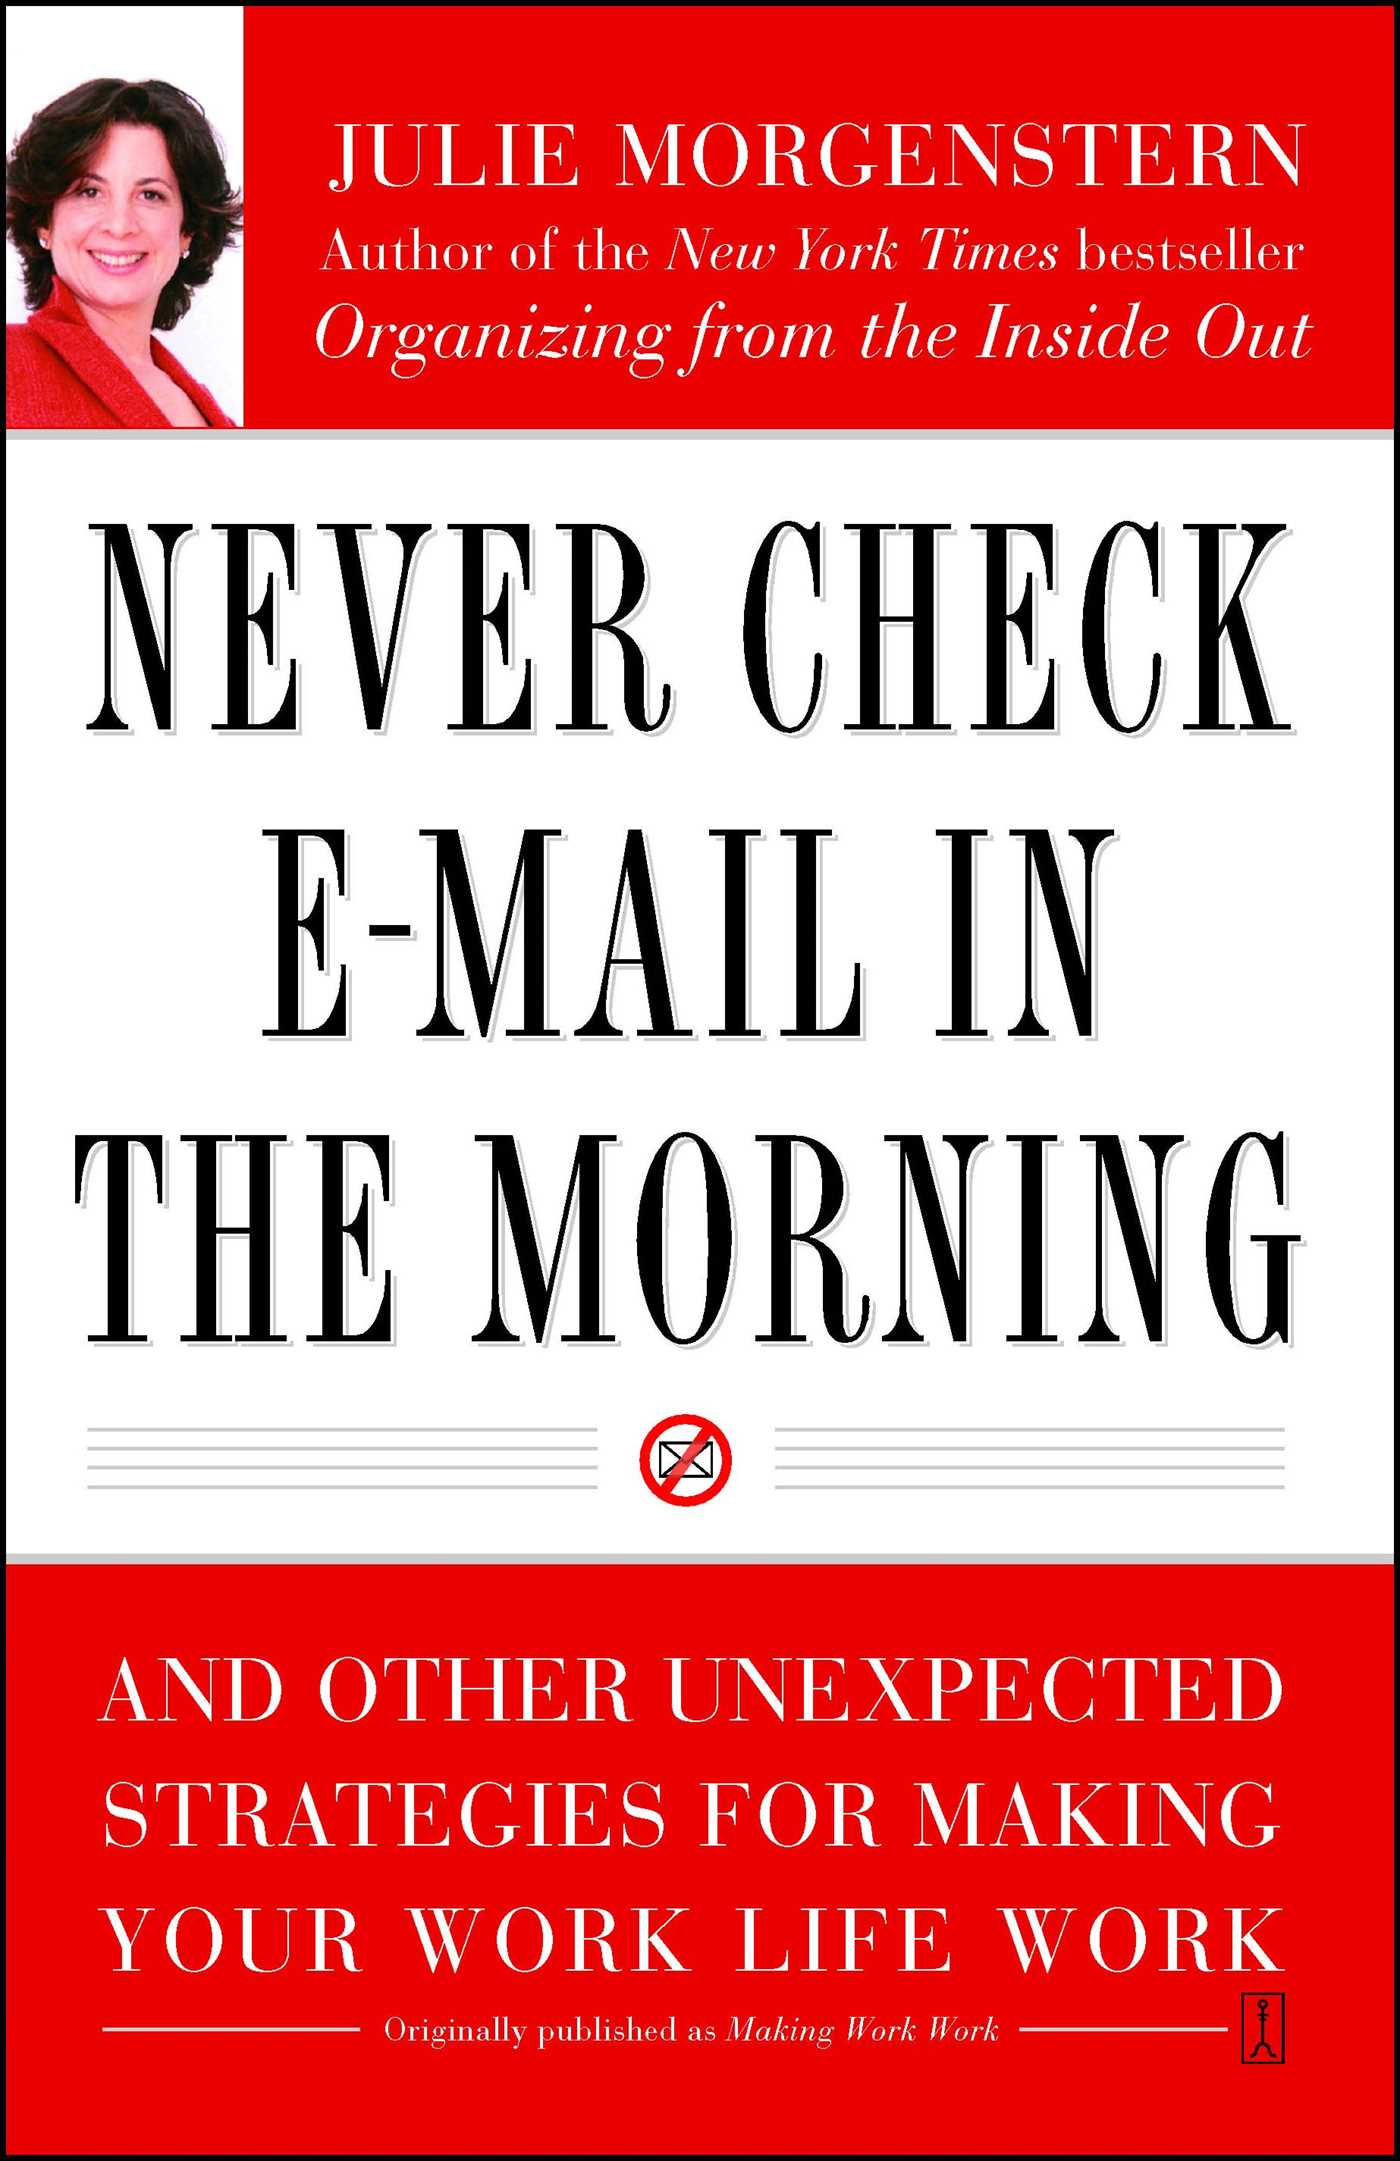 Never-check-e-mail-in-the-morning-9781439119952_hr